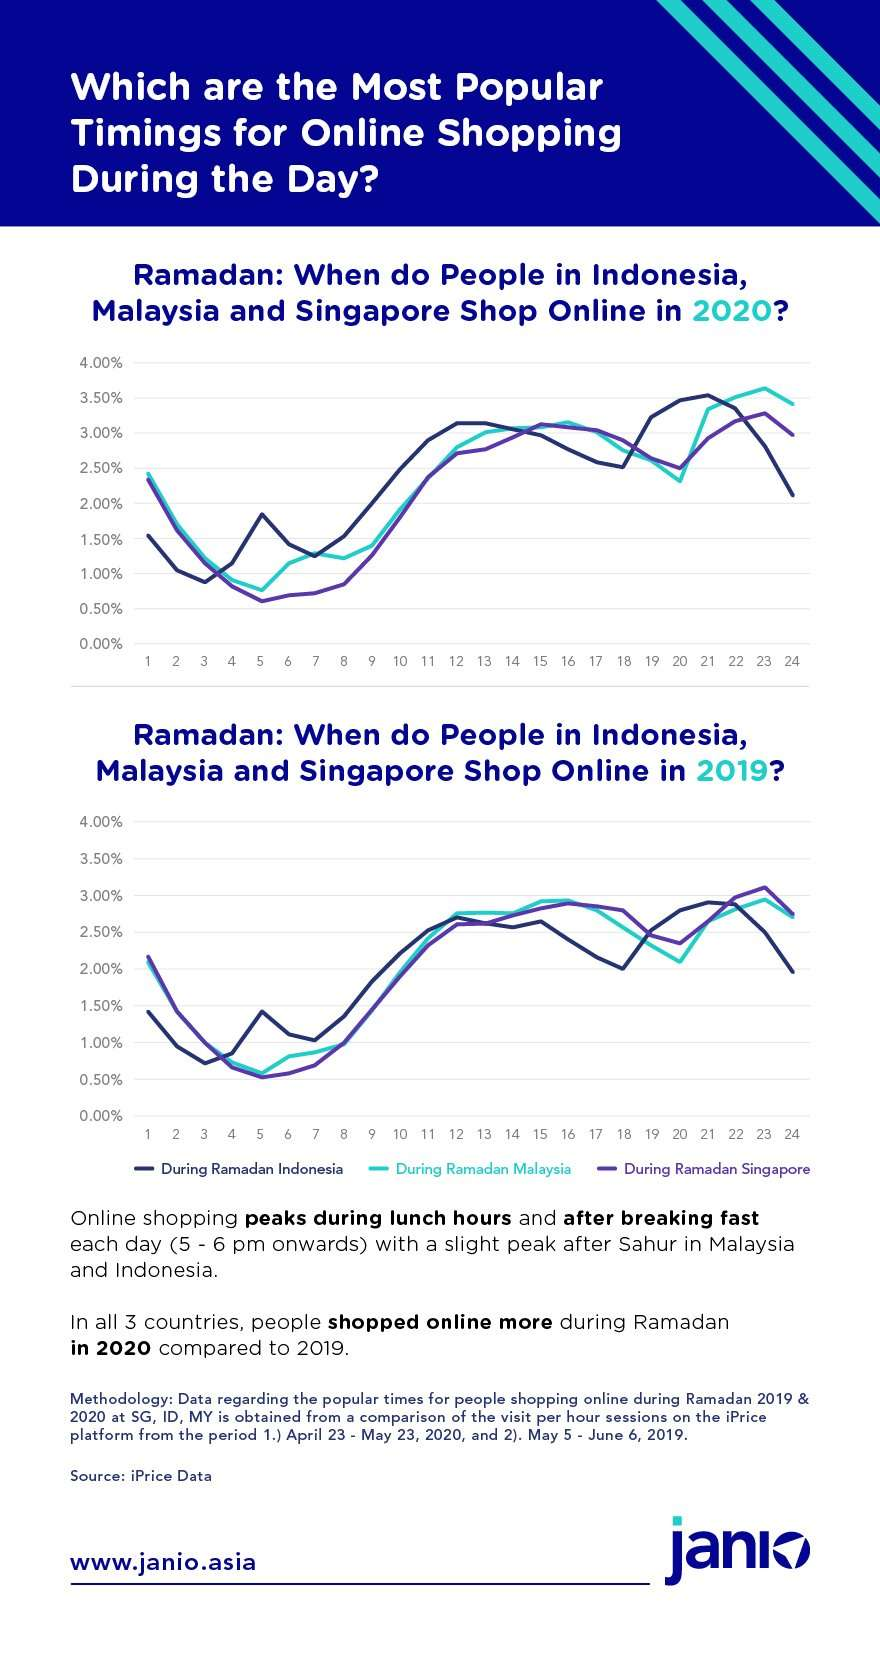 Ramadan when do people in Indonesia, Malaysia, and Singapore Shop Online in 2019 and 2020 during Ramadan?